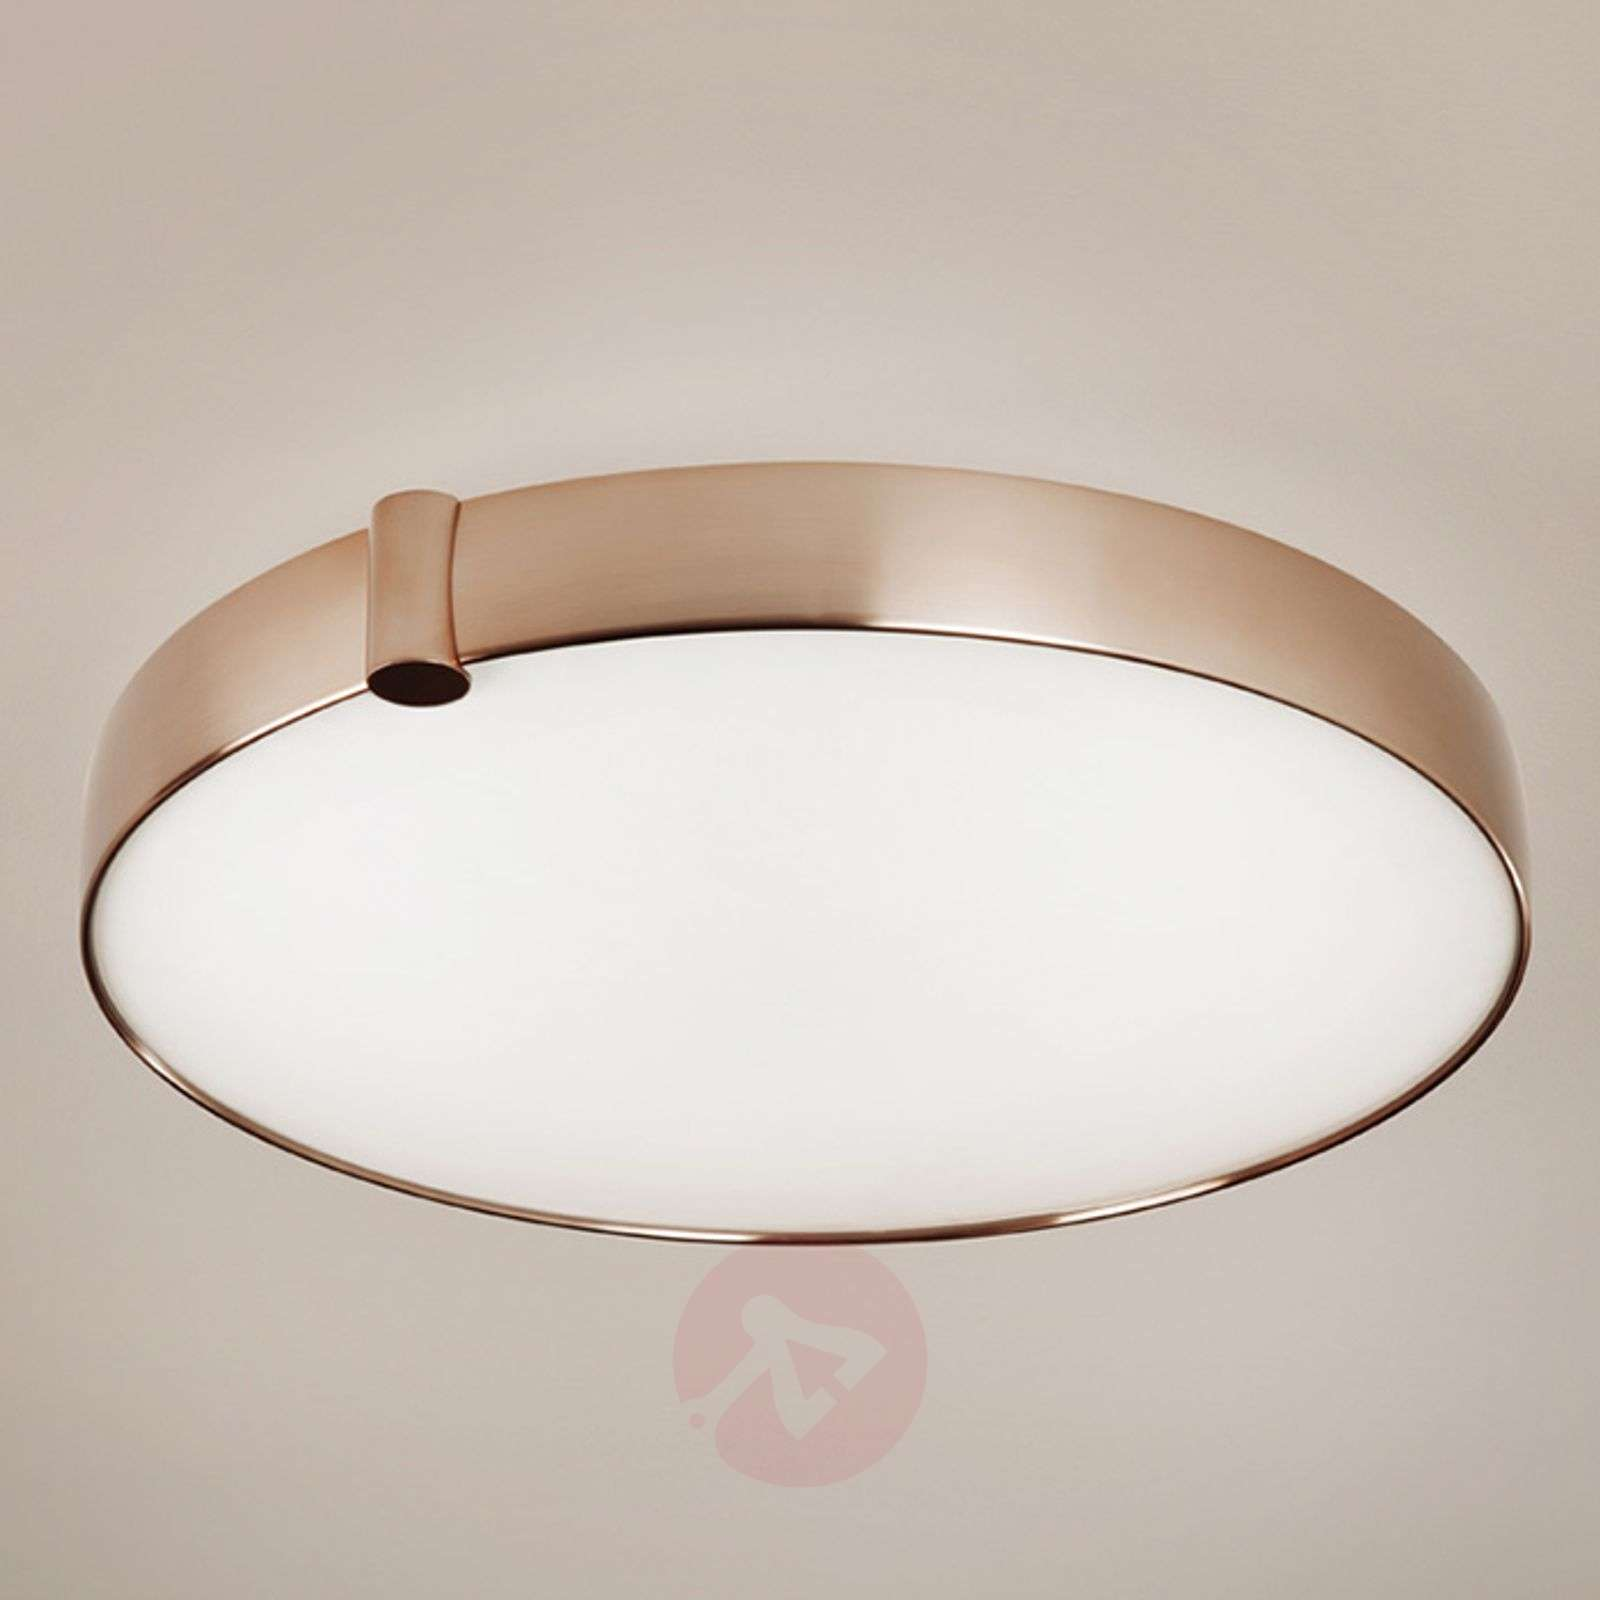 Round led ceiling light siss copper coloured lights round led ceiling light siss copper coloured 3027108 01 aloadofball Image collections